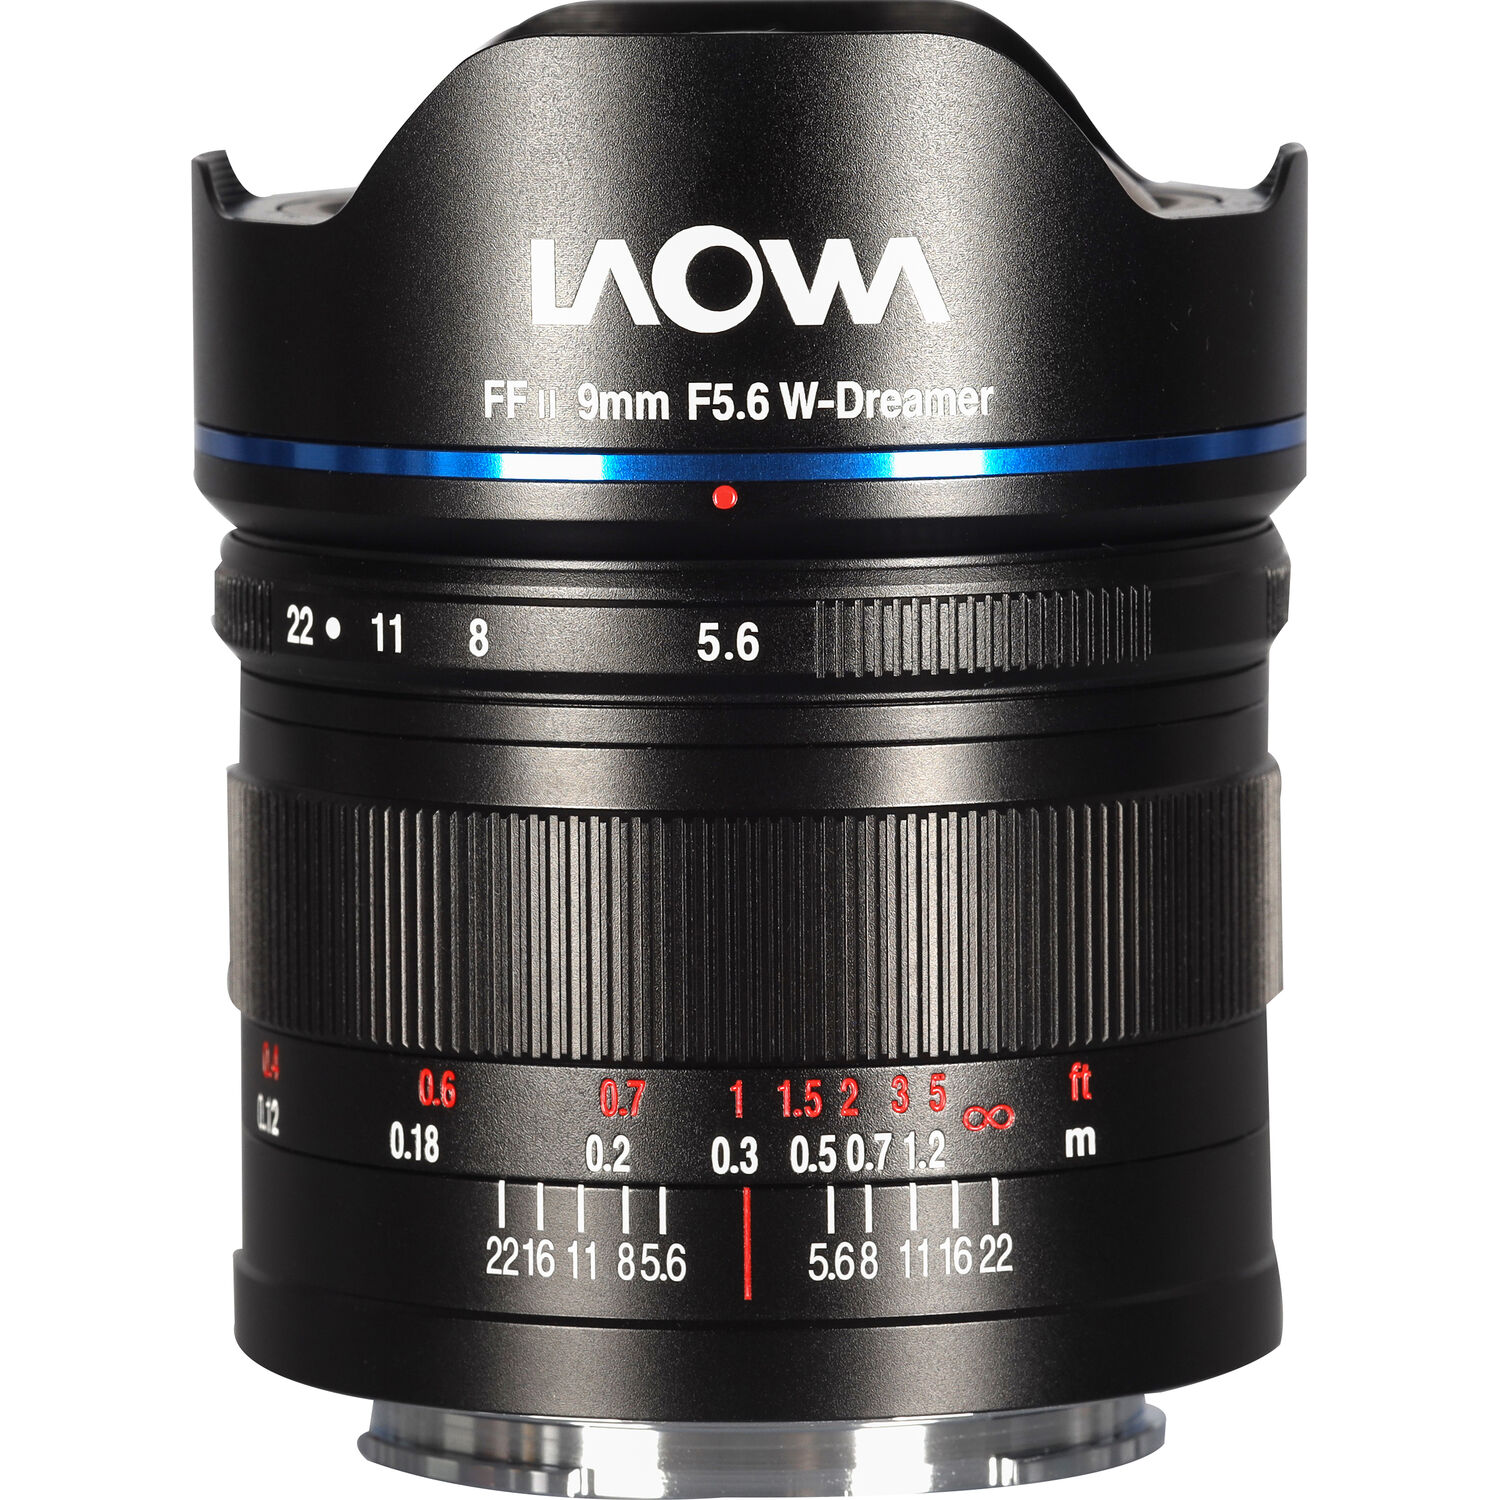 Venus Optics Laowa 9mm f/5.6 FF RL Lens for Sony E